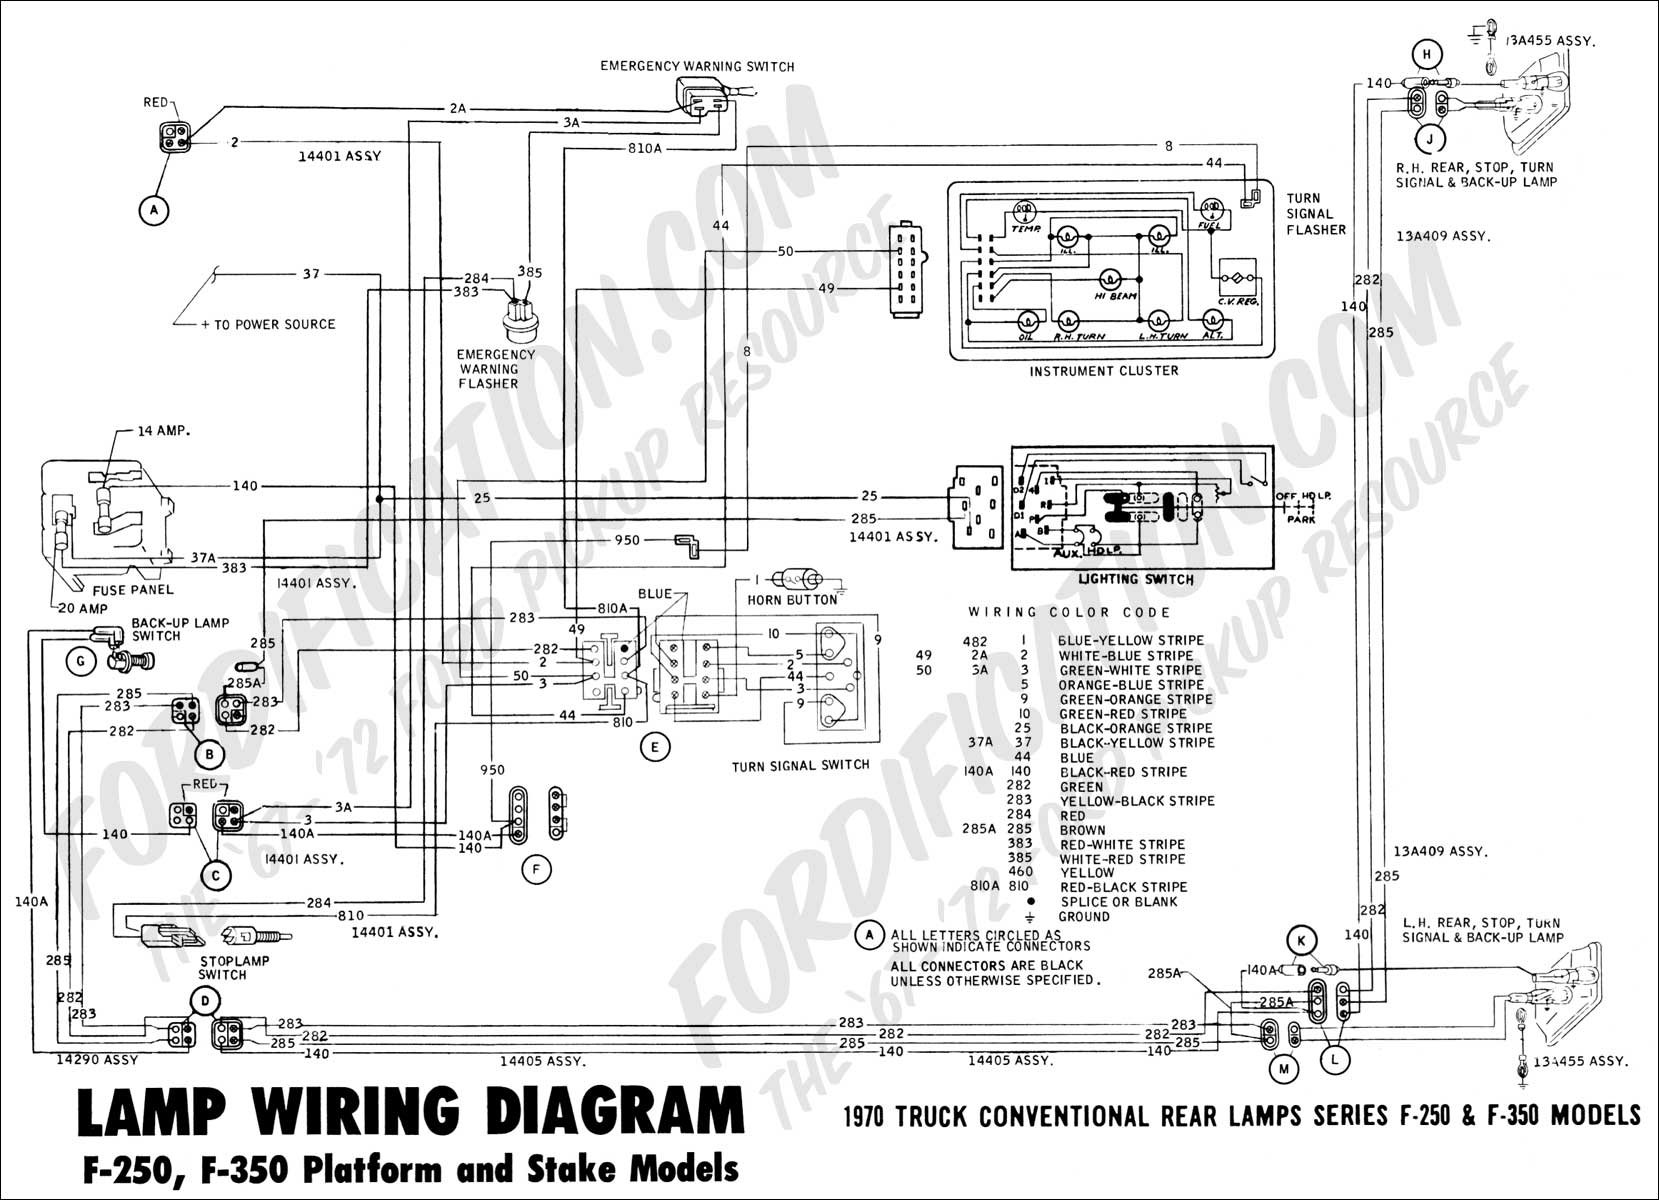 1999 F350 Rear Schematic Layout Wiring Diagrams Diagram 02 Ford Headlight Detailed Schematics Rh Highcliffemedicalcentre Com 1996 V10 Mpg